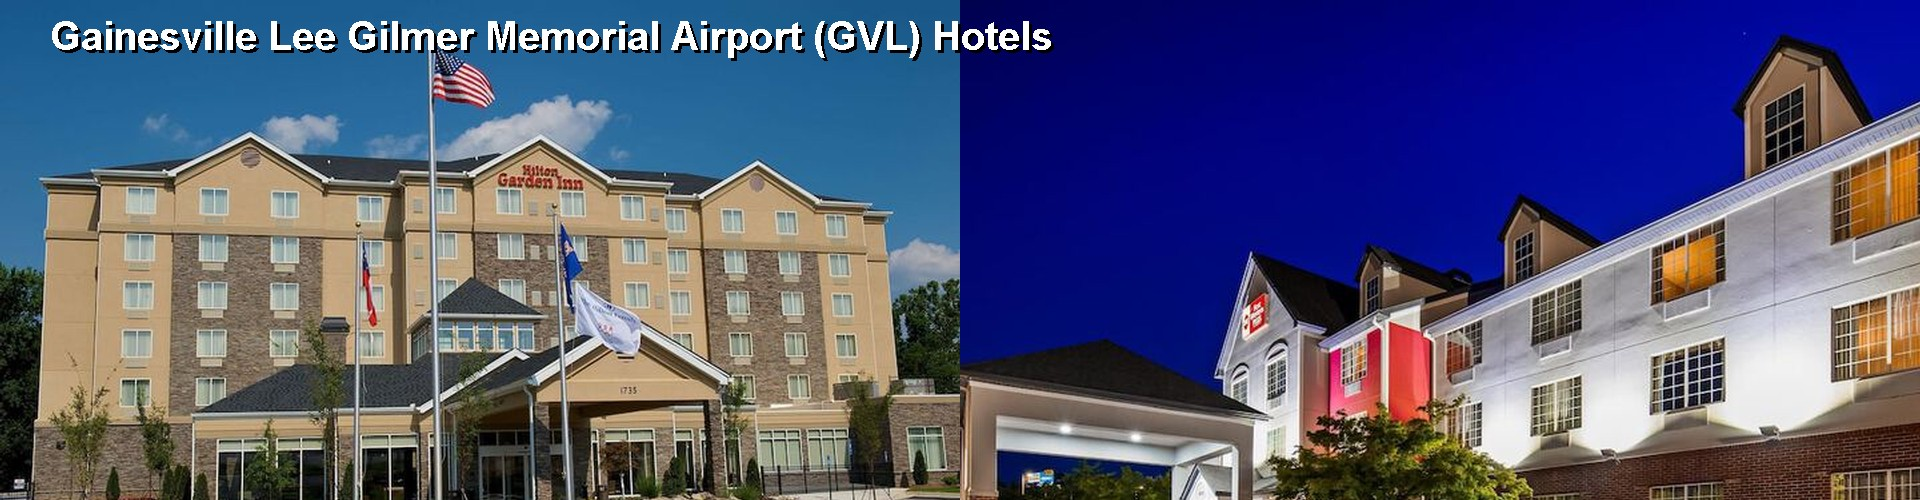 5 Best Hotels near Gainesville Lee Gilmer Memorial Airport (GVL)